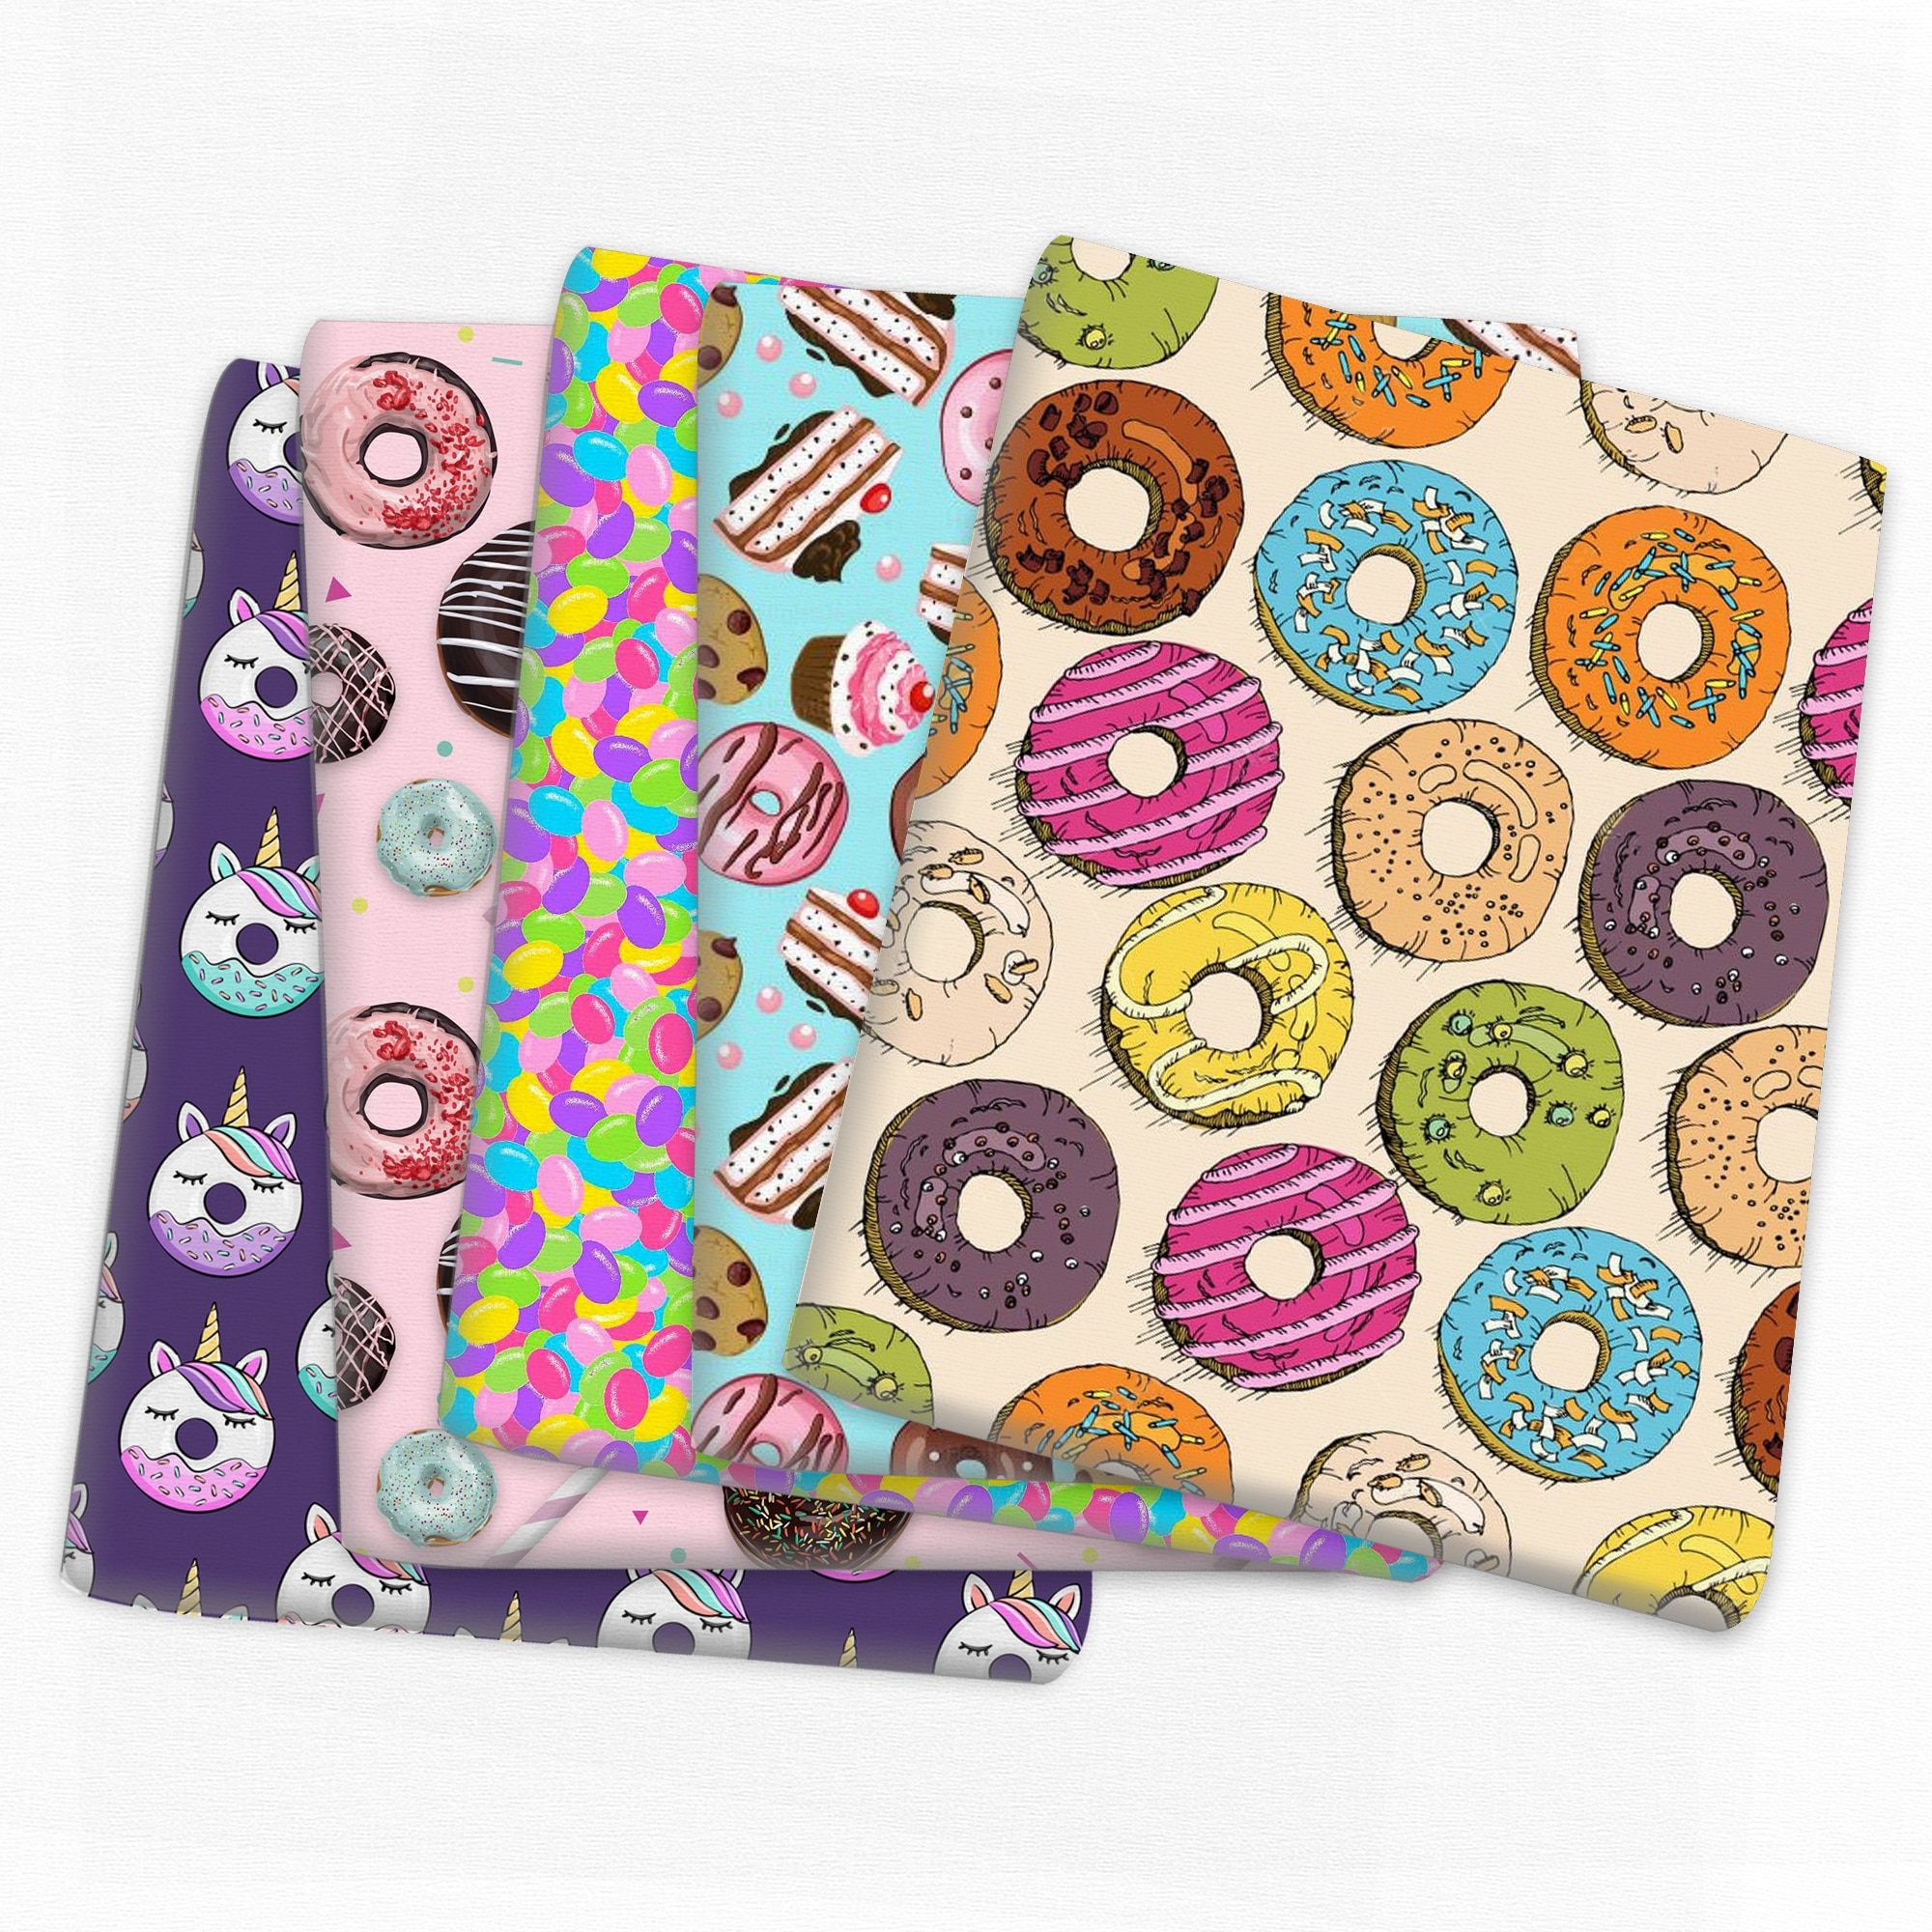 Patchwork Donuts Cake Polyester Cotton Fabric for Tissue Kids Sewing Quilting Fabrics Needlework Material DIY,c14064